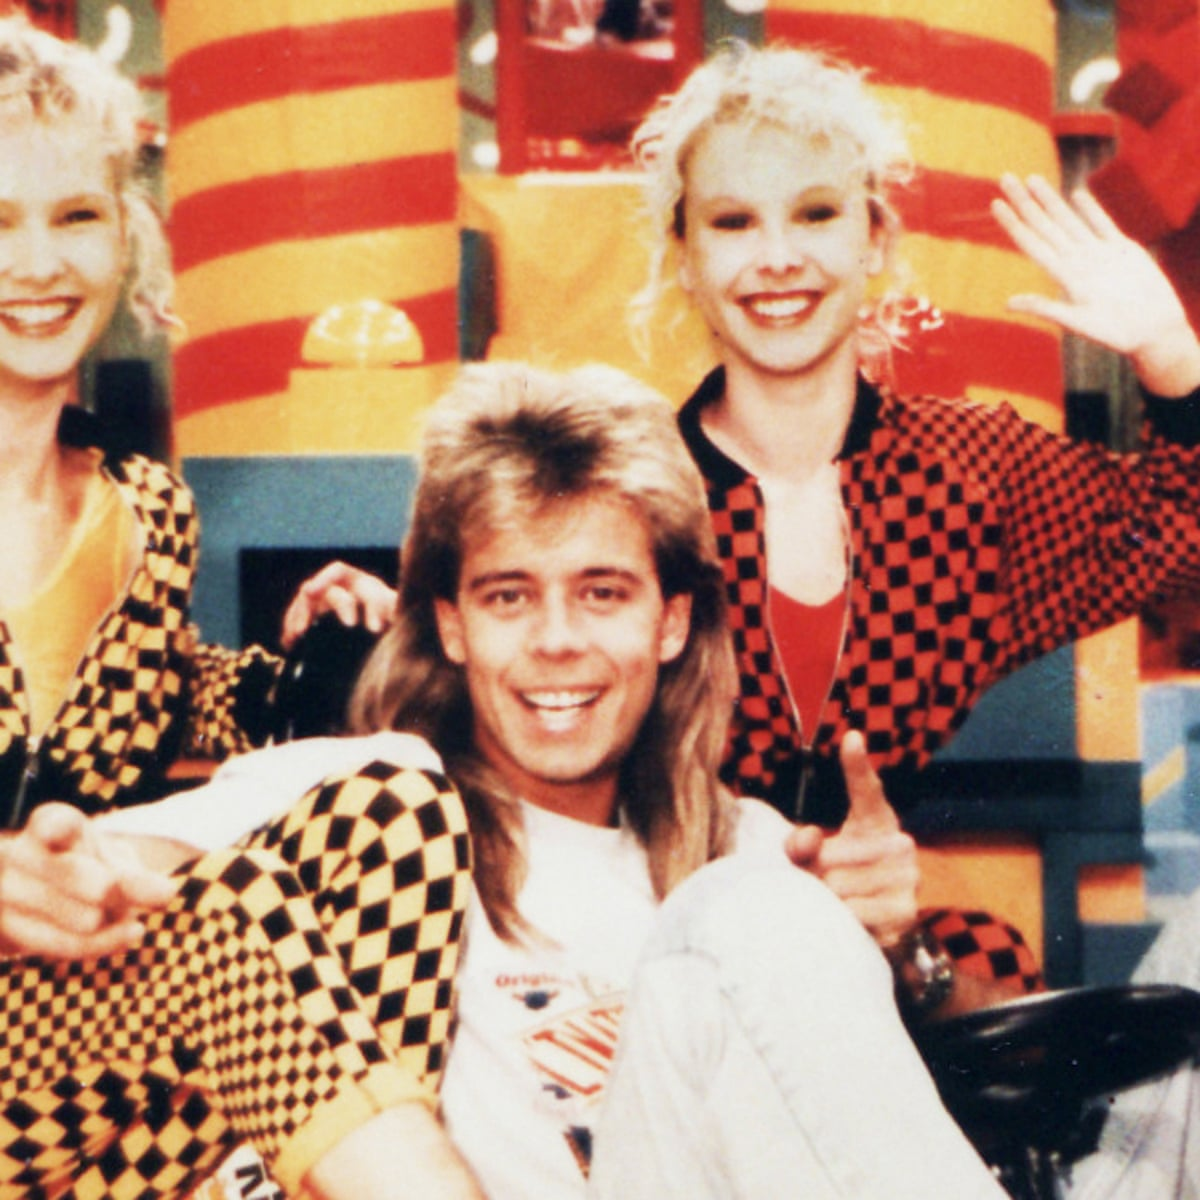 A Return For Pat Sharp And Fun House Don T Fall For The Nostalgia Trap Phoebe Jane Boyd Opinion The Guardian